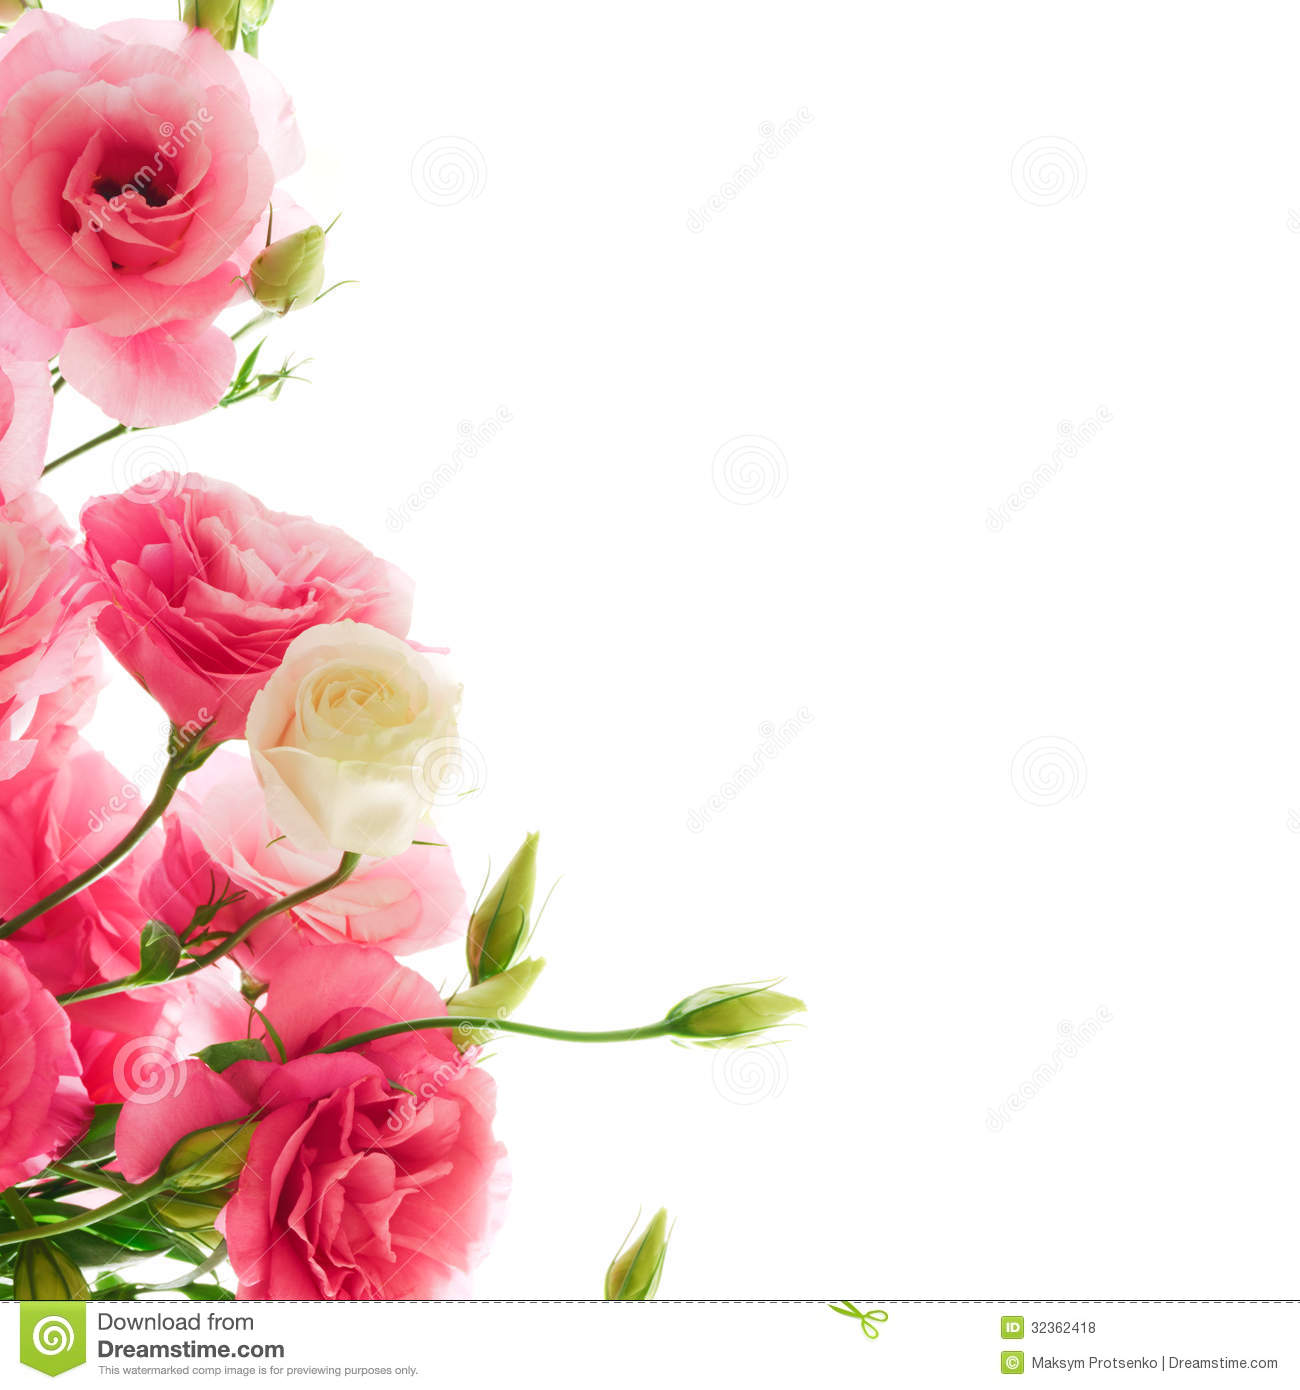 Free background pictures of flowers png free library Free background flowers - ClipartFest png free library